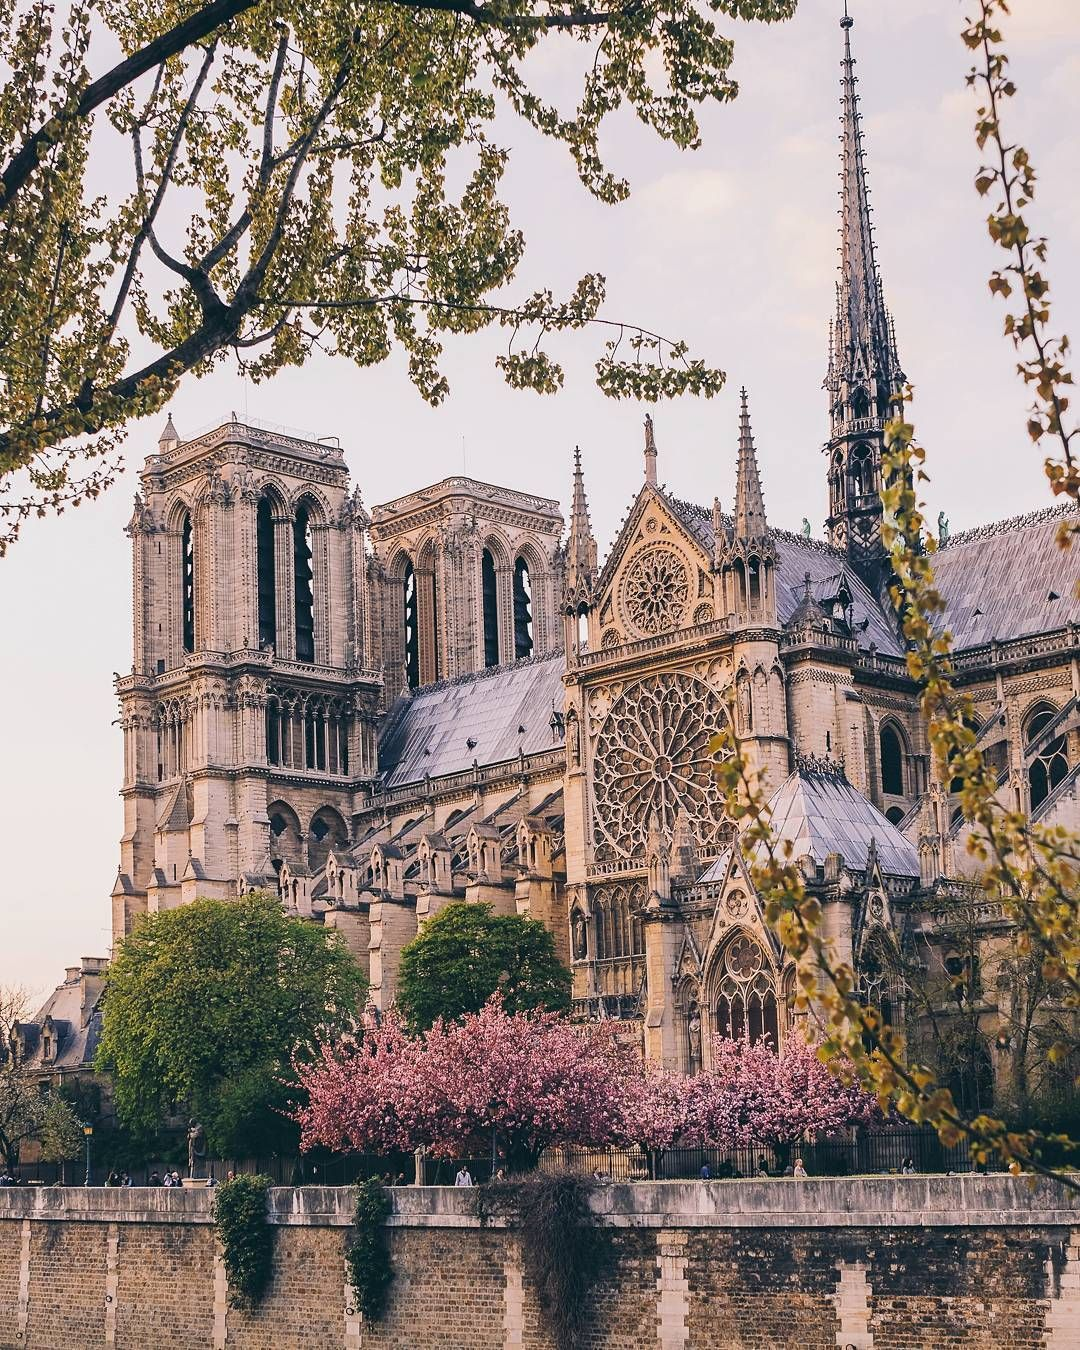 Wedding decorations yellow and white november 2018 everythingthing uc Cathédrale NotreDame de Paris by wonguy